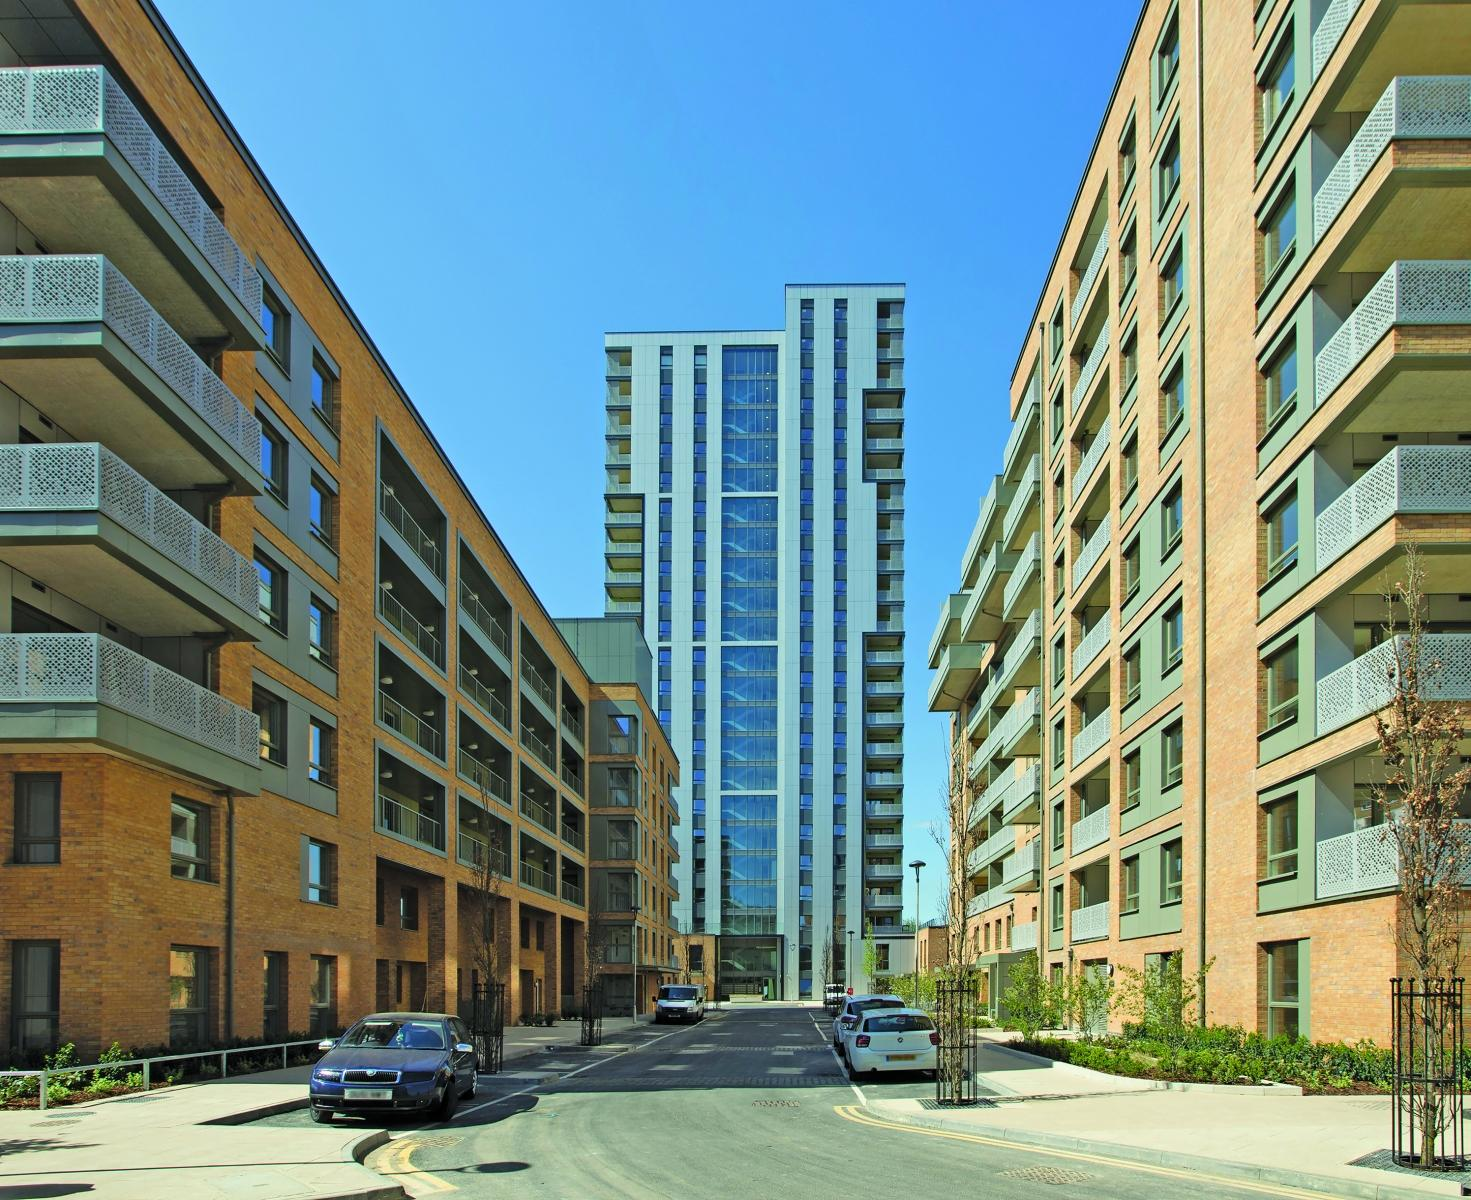 Veolia UK | Cannon Road Haringey to receive heating and hot water via Veolia cogeneration / combined heat and power (CHP)